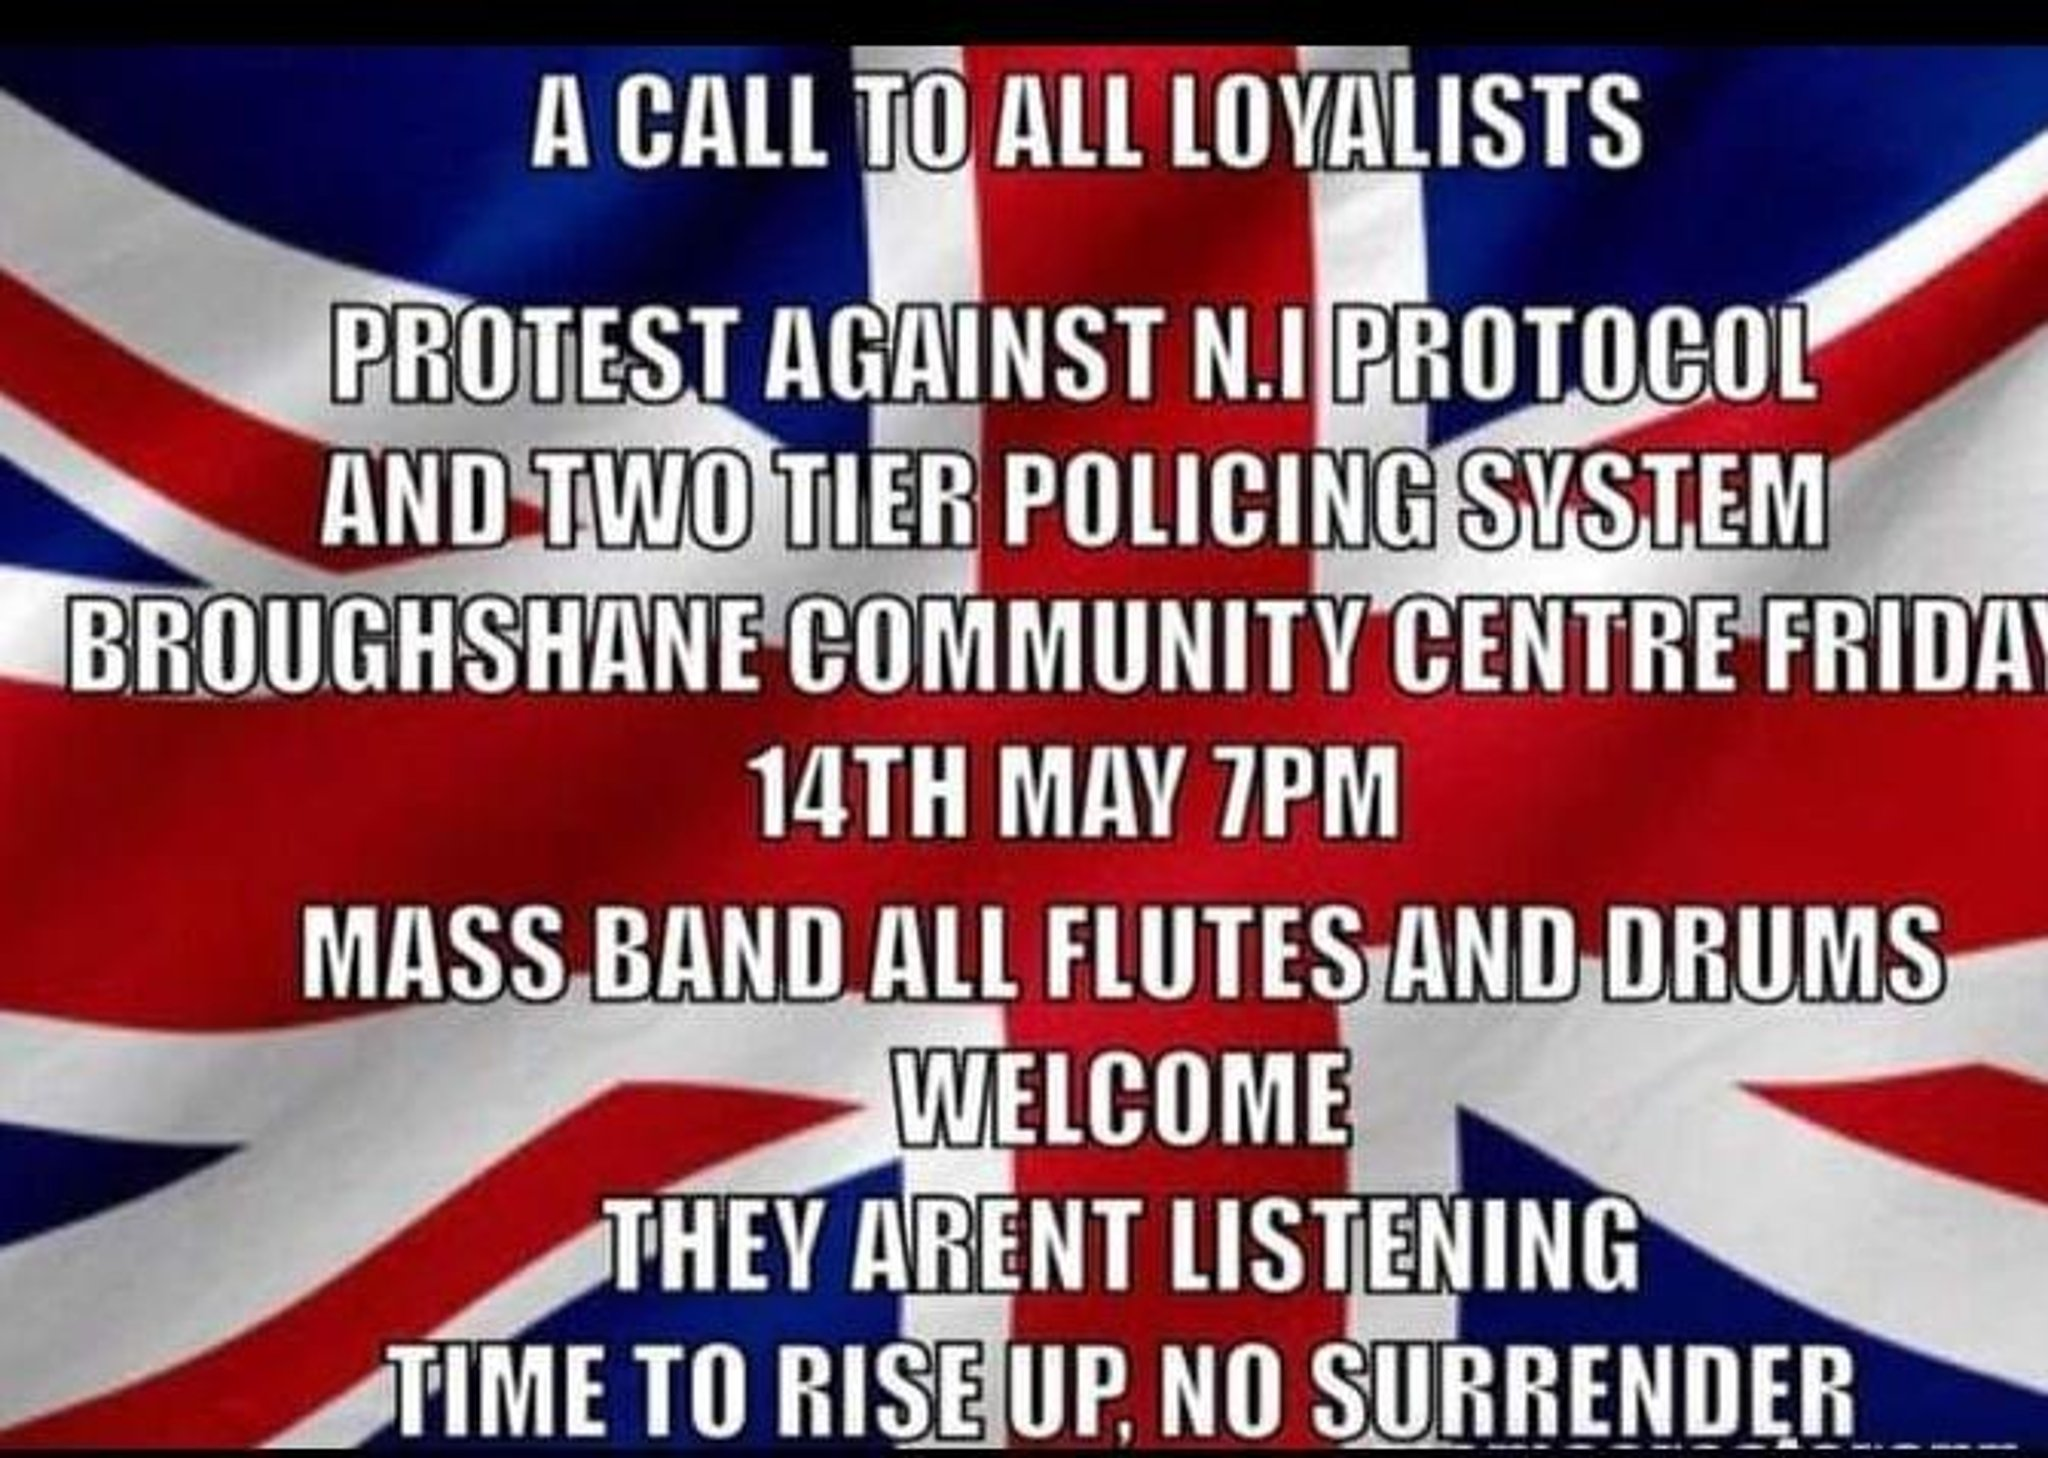 Protest to be hald in Broughshane against NI protocol - details posted on social media